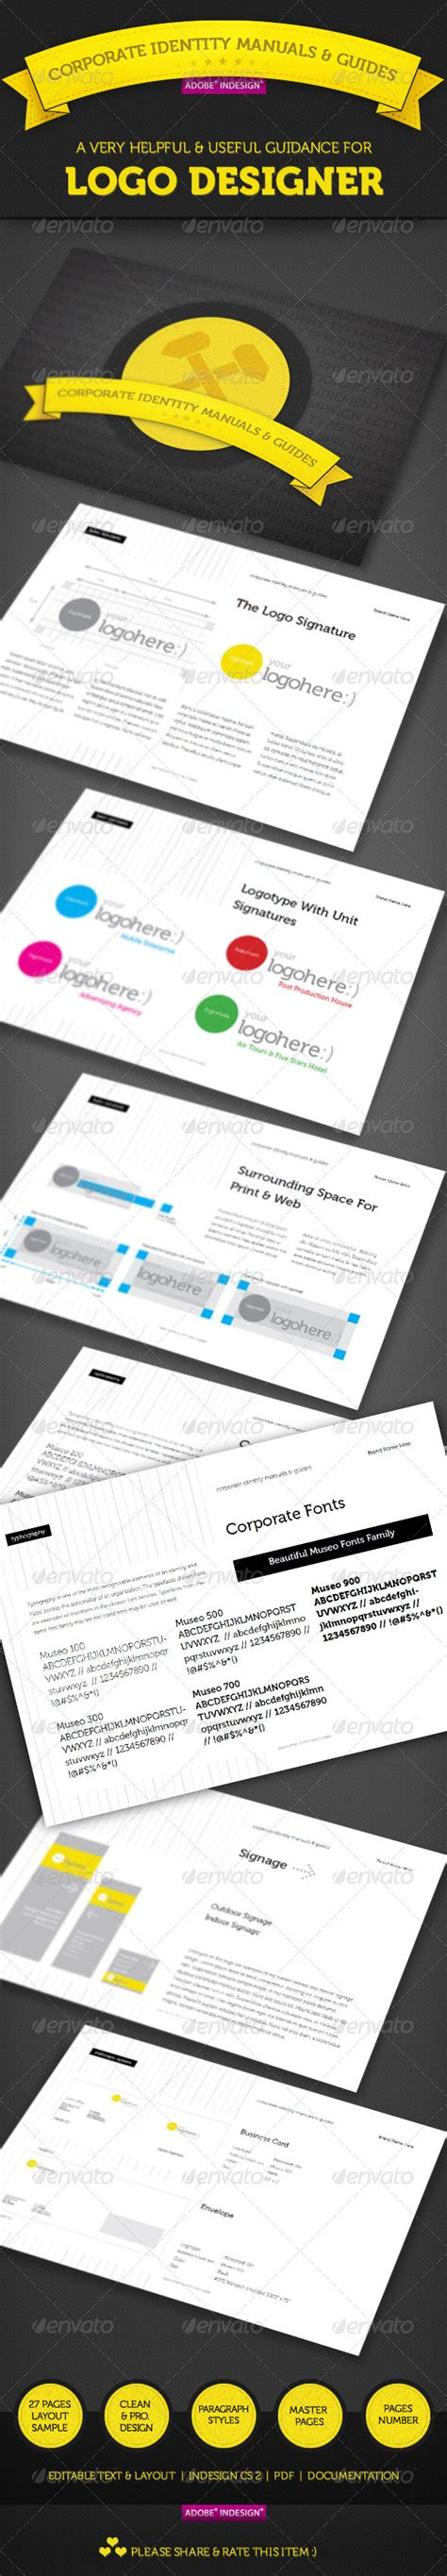 corporate identity manual template corporate identity manuals and guides template graphicriver